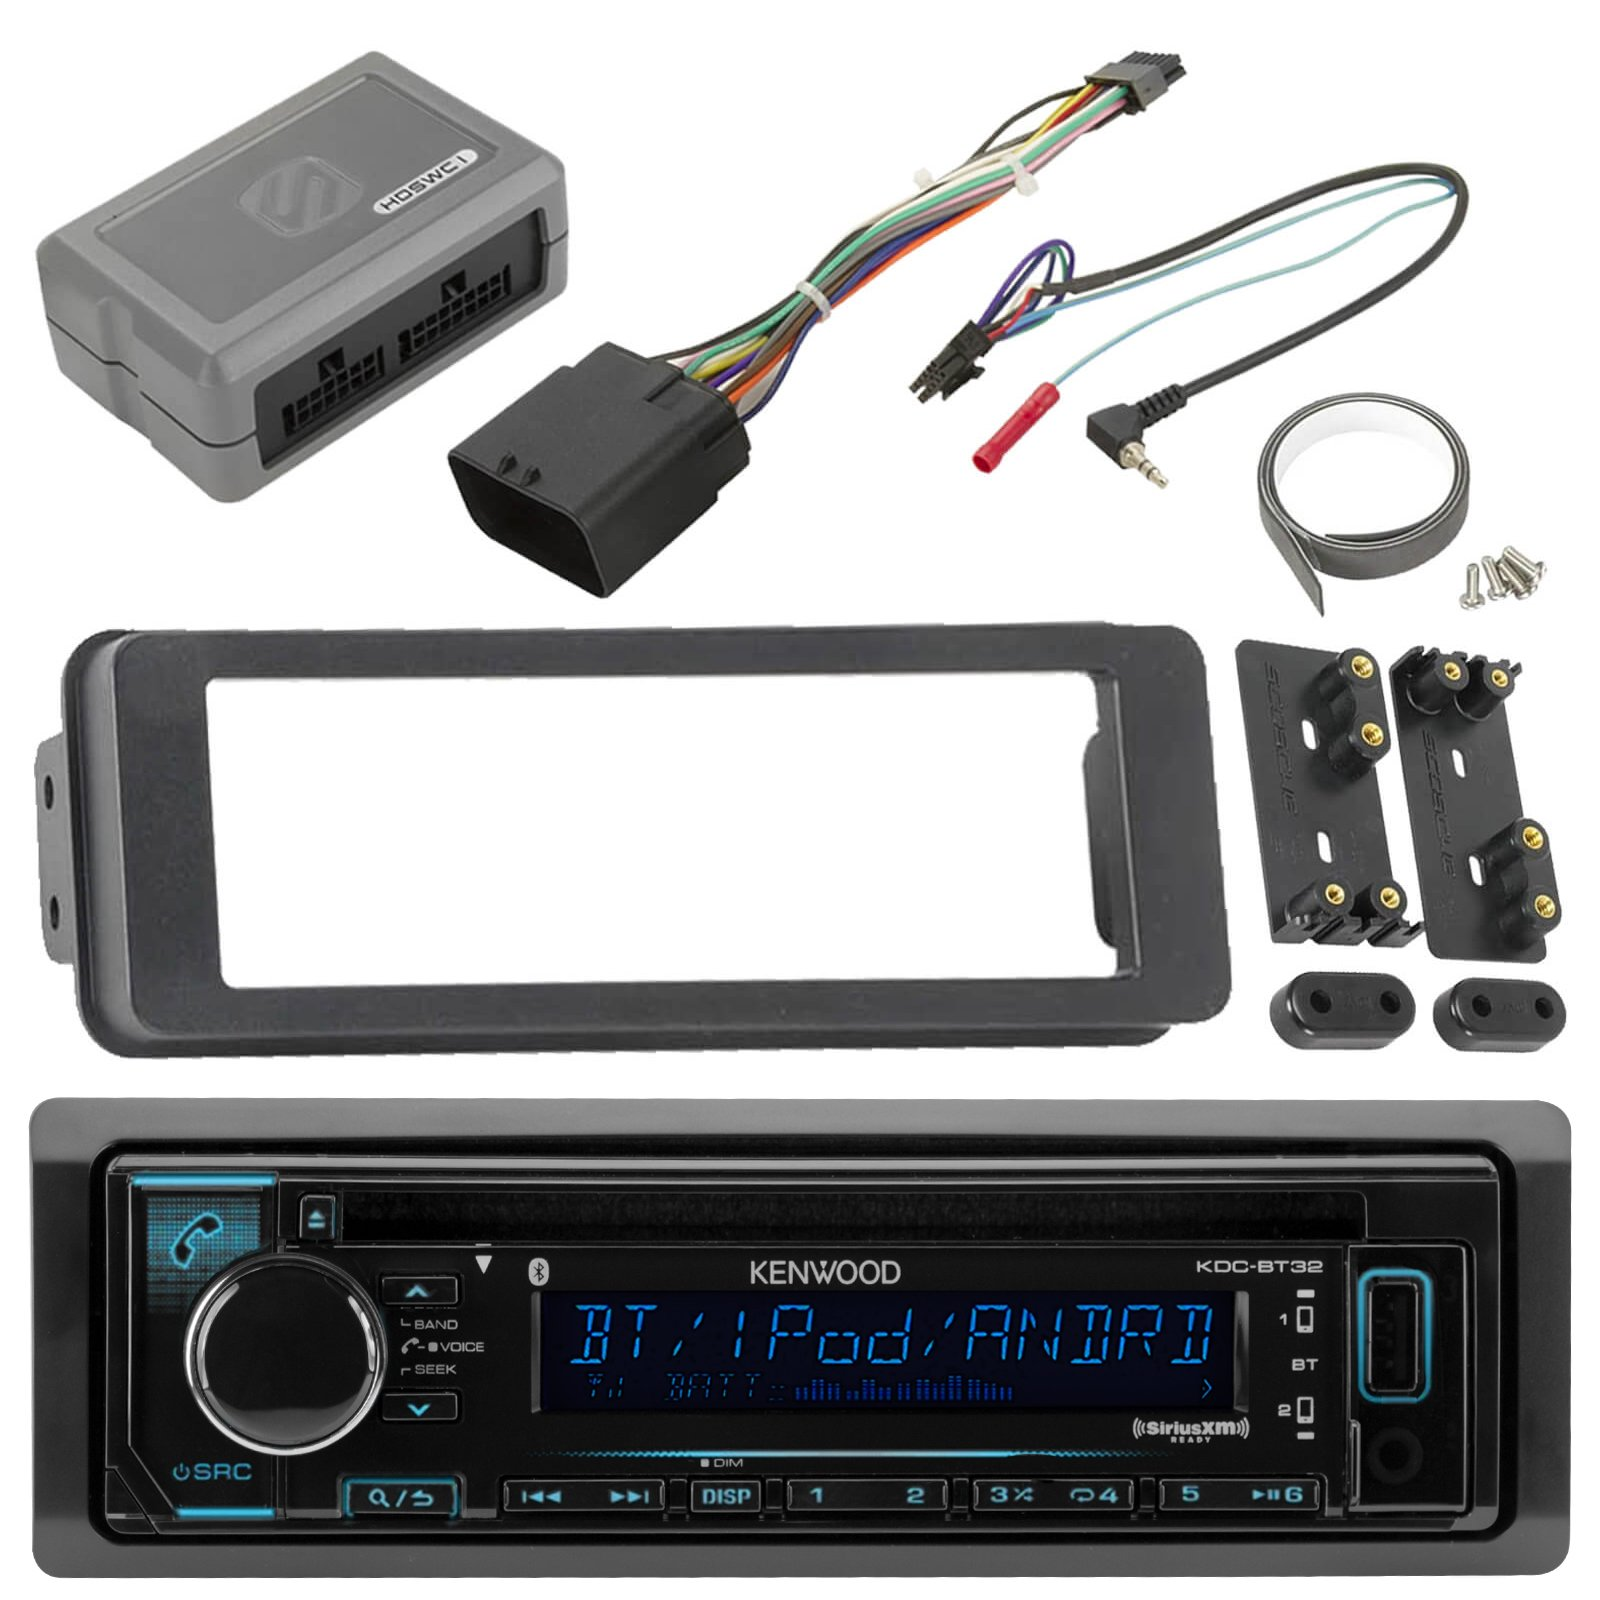 Kenwood KDCBT32 Bluetooth USB AUX CD Player Receiver w/ Variable Color Display, Scosche Adapter Dash Install Kit for Radio + Handle Bar Control Module - Fits 1998 2013 Harley Touring Motorcycle Bikes